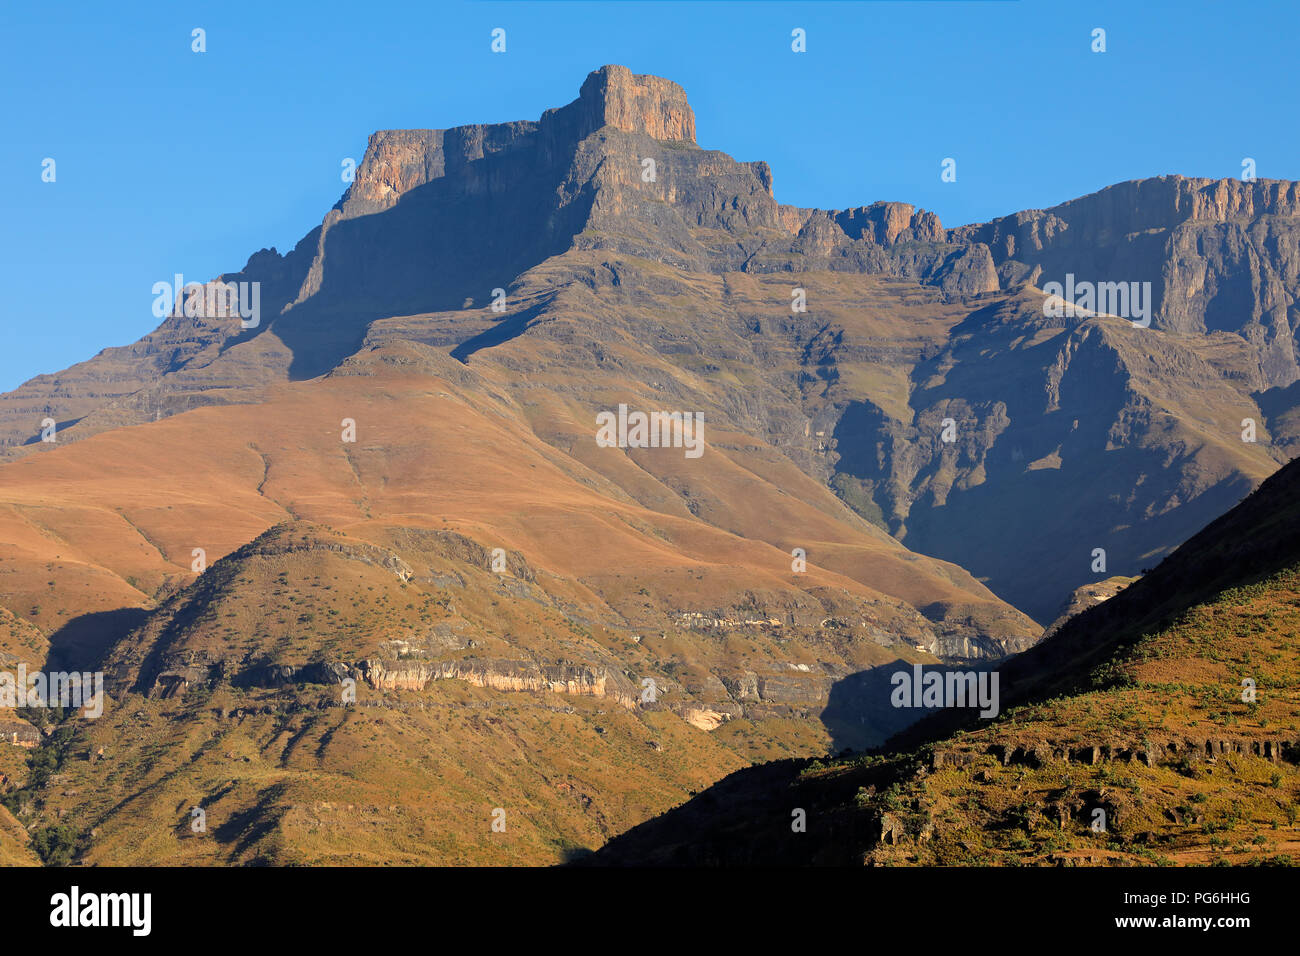 High Peak dans les montagnes du Drakensberg, Parc national royal Natal, Afrique du Sud Photo Stock